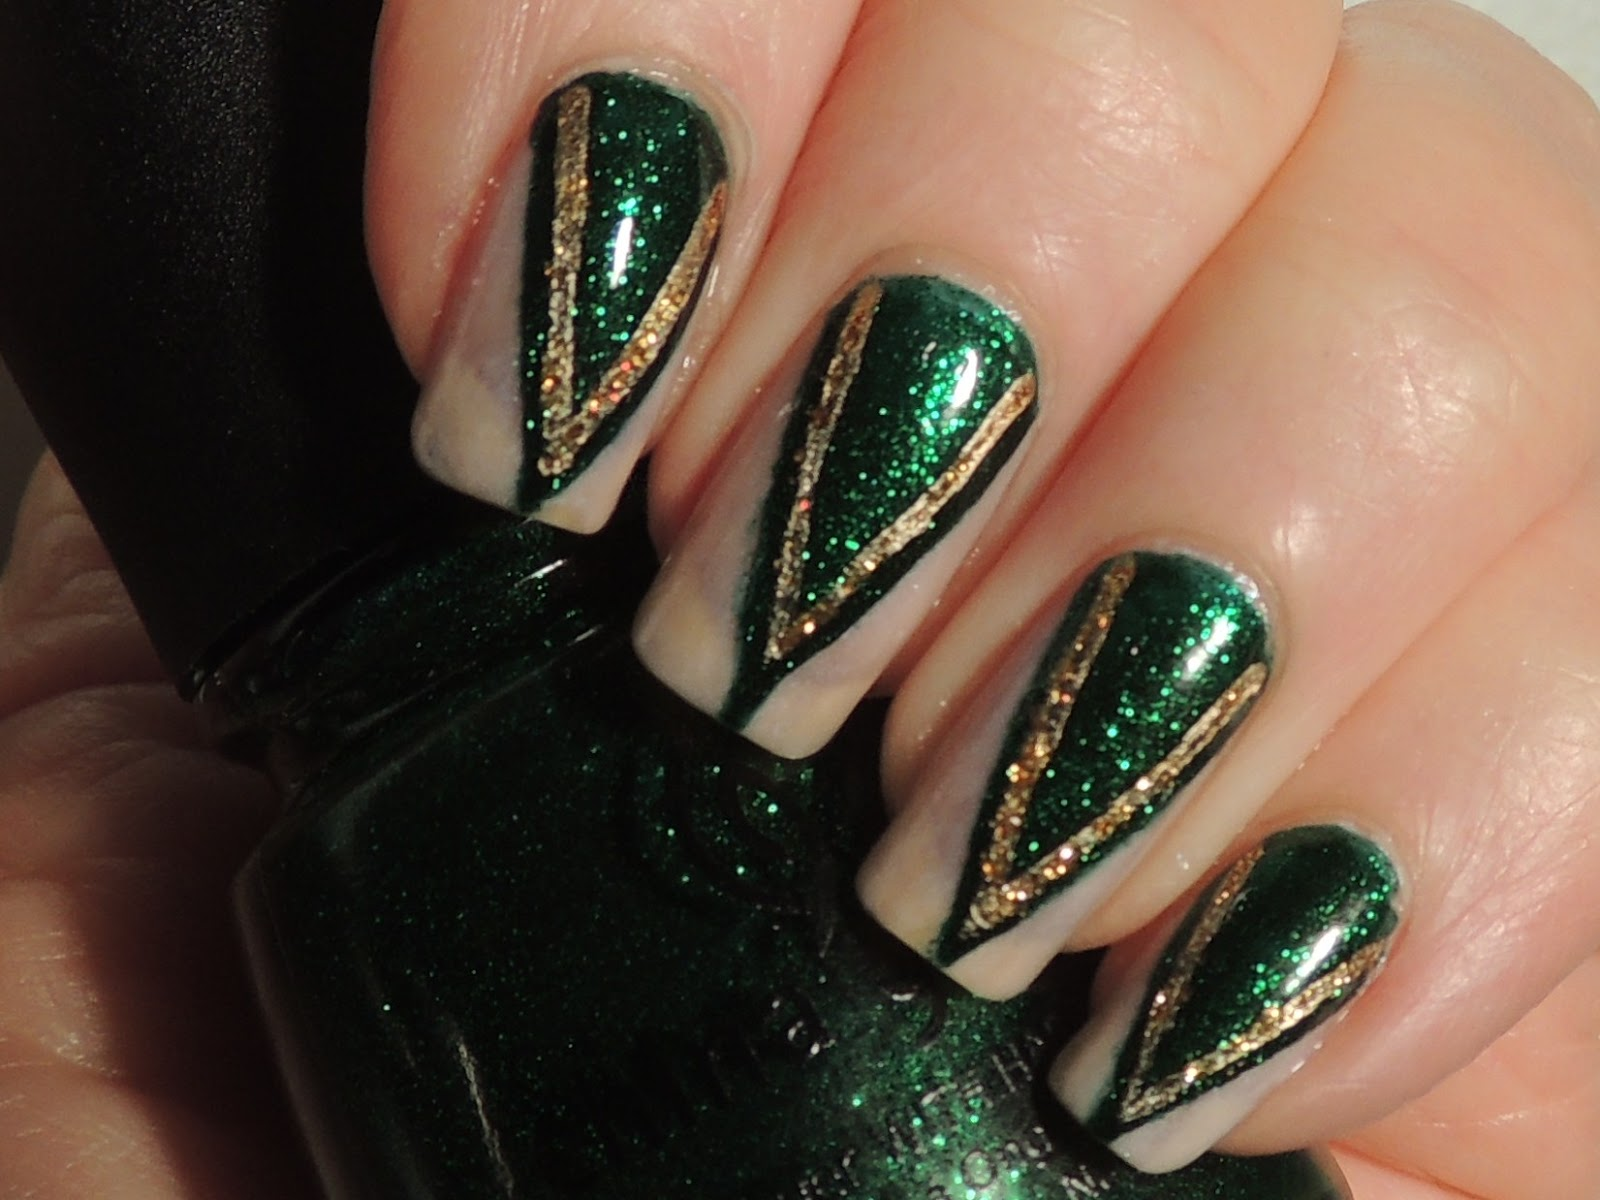 Oz the Great and Powerful - Evanora s NailsEvanora Nails